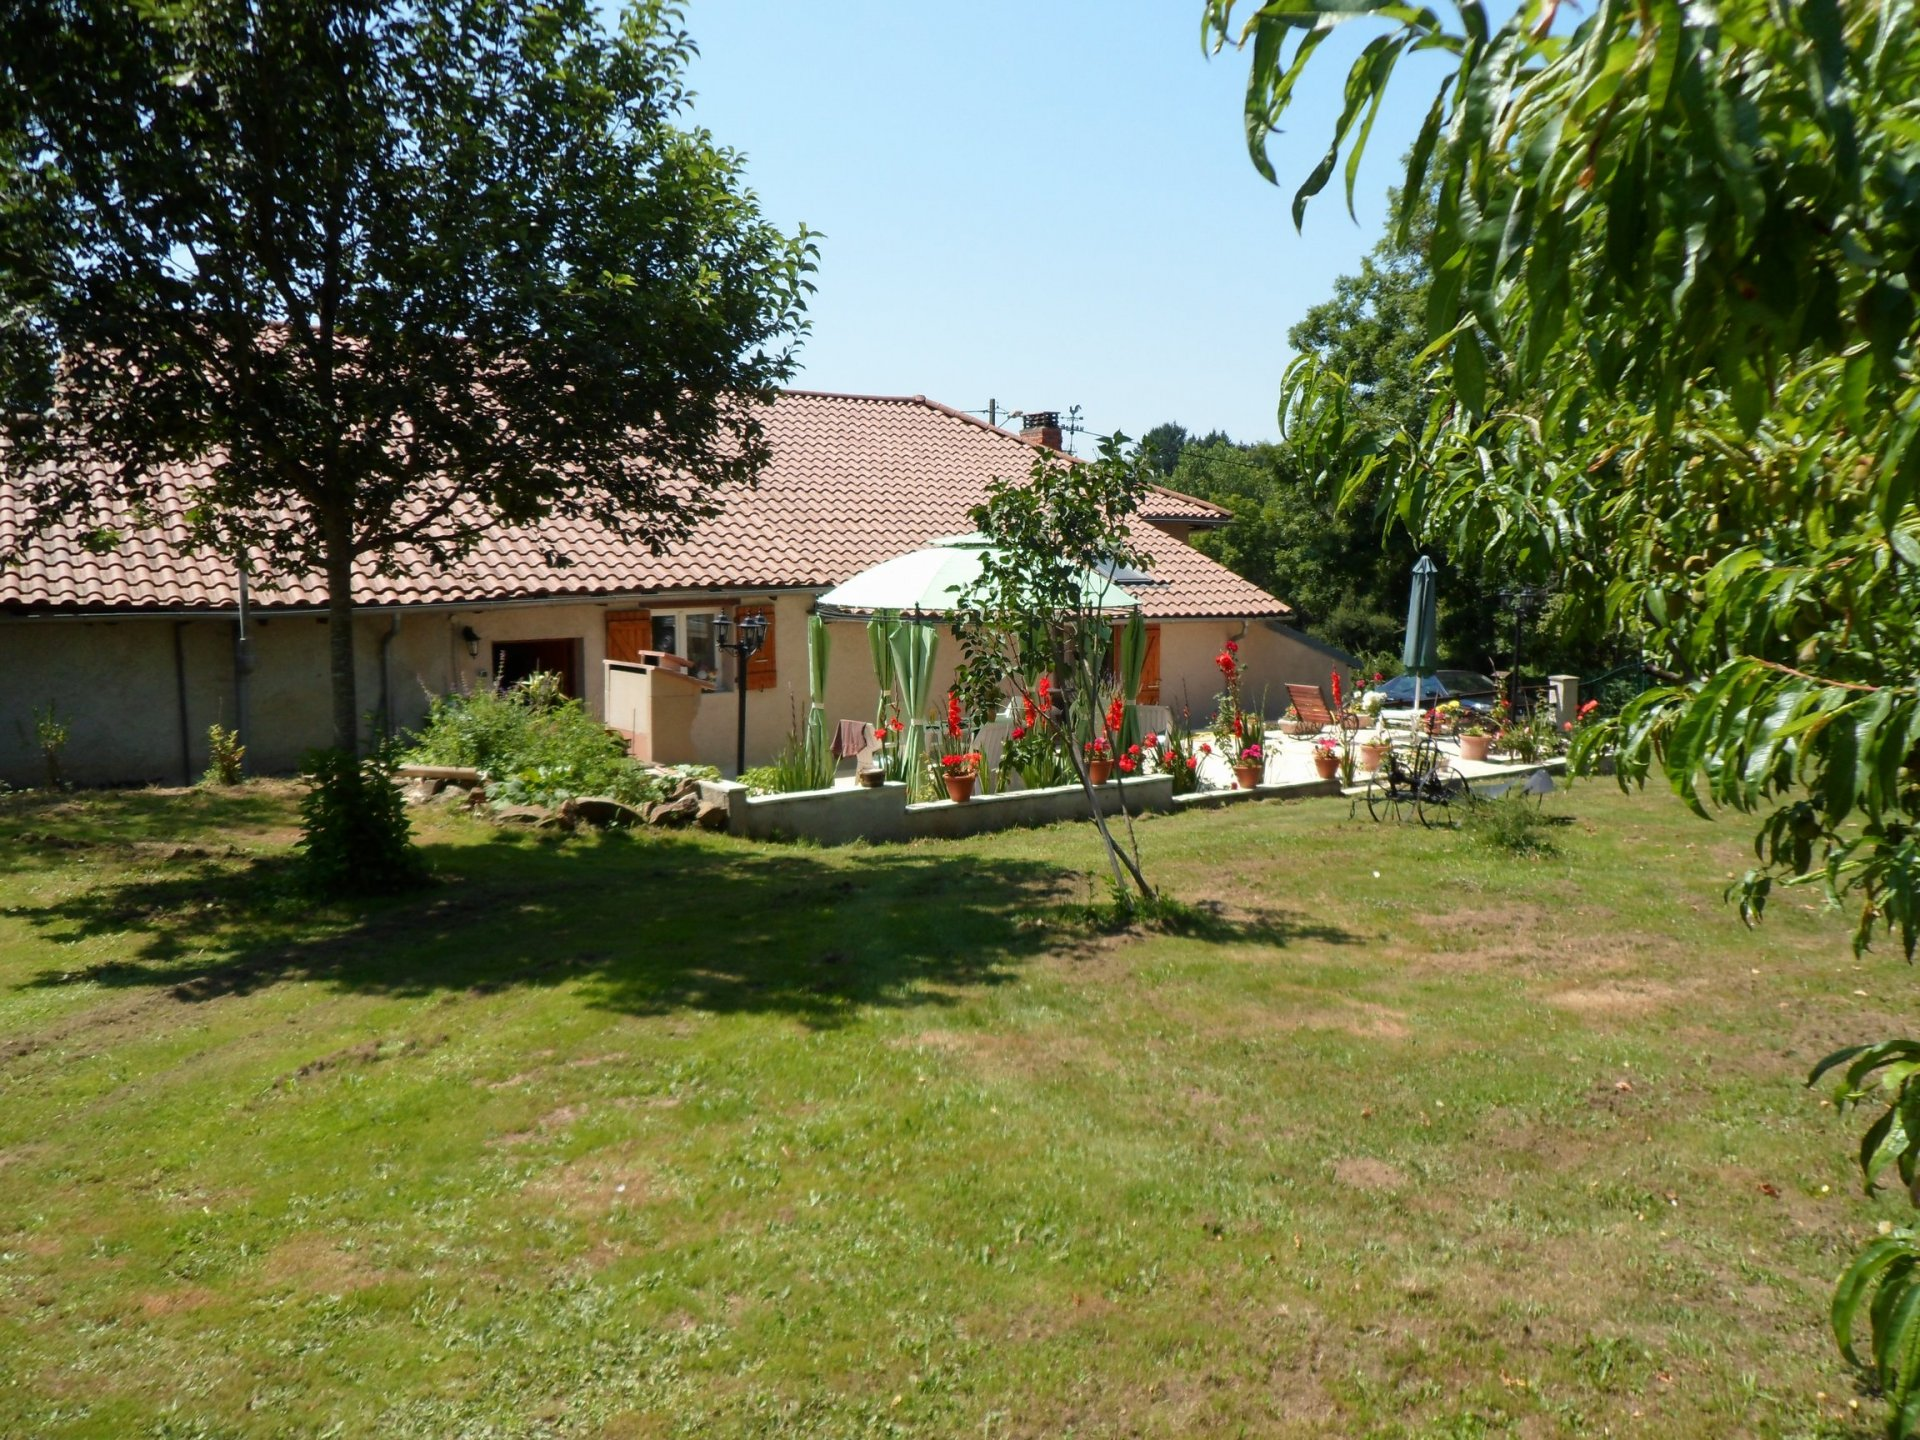 2 renovated country cottages with barn, large private garden and pool